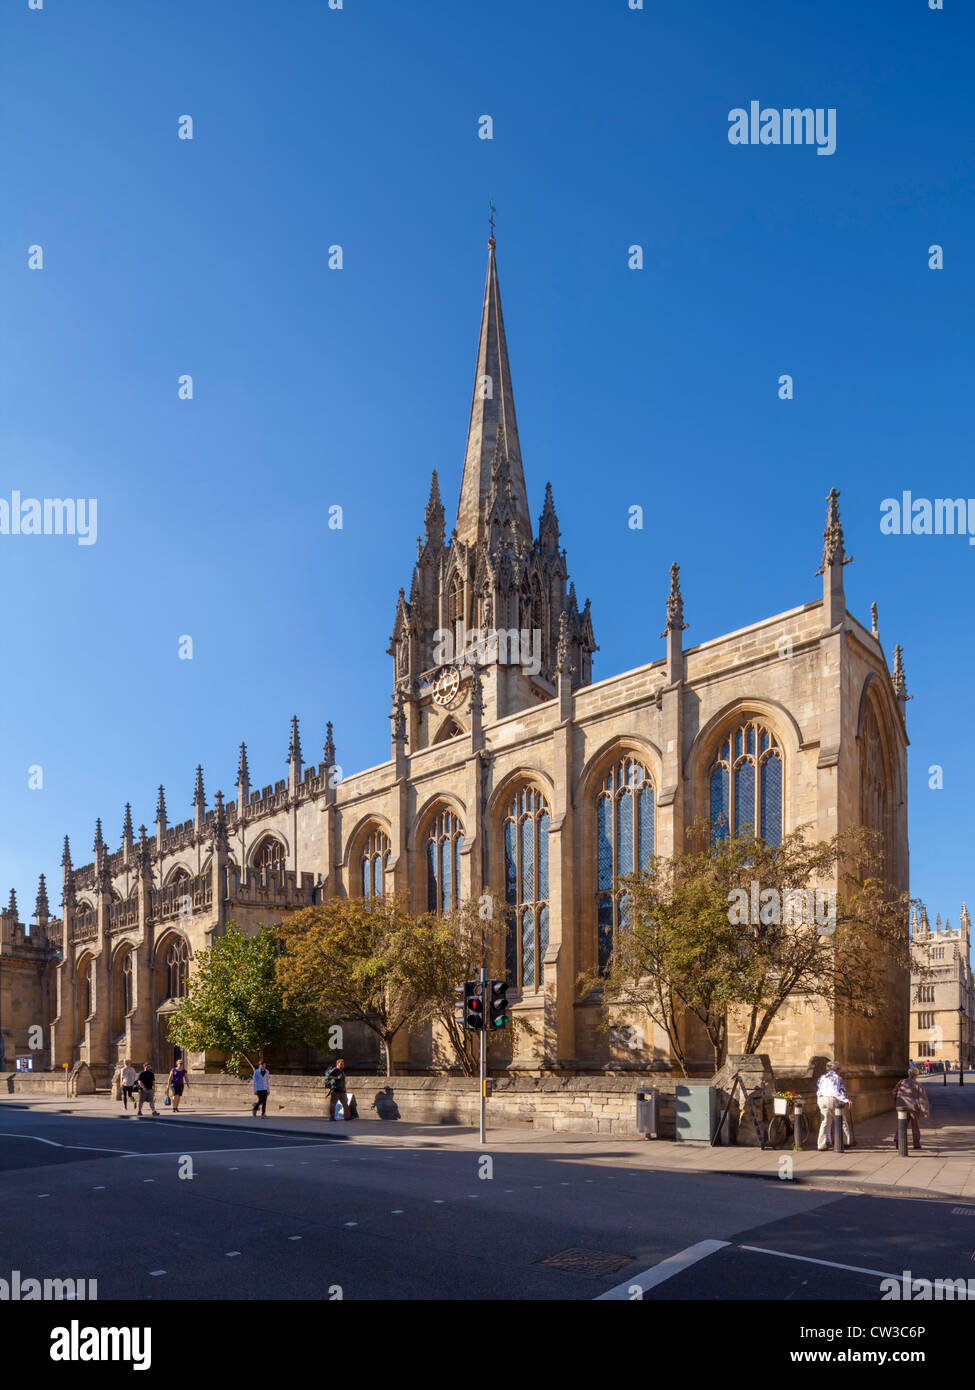 Oxford university Church Of St. Mary The Virgin - Stock Image